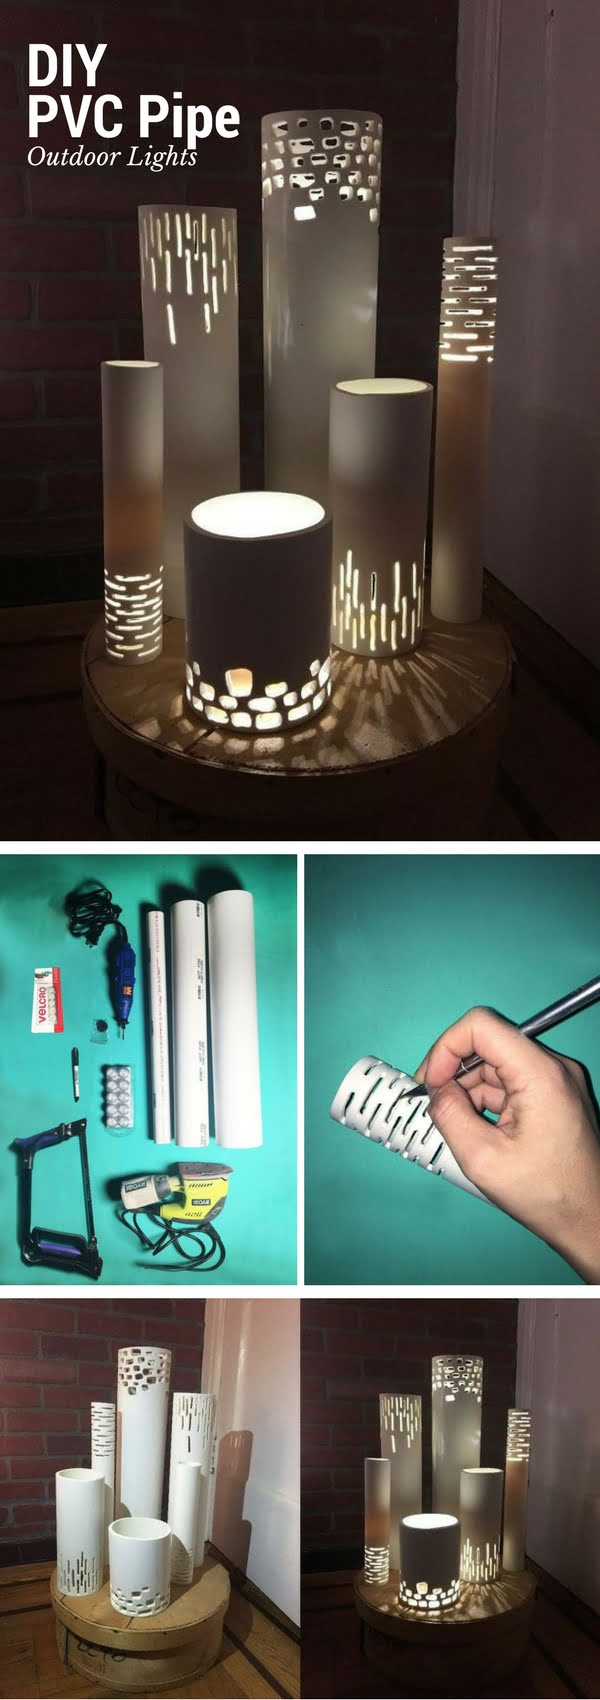 How to make easy DIY outdoor pvc pipe lights